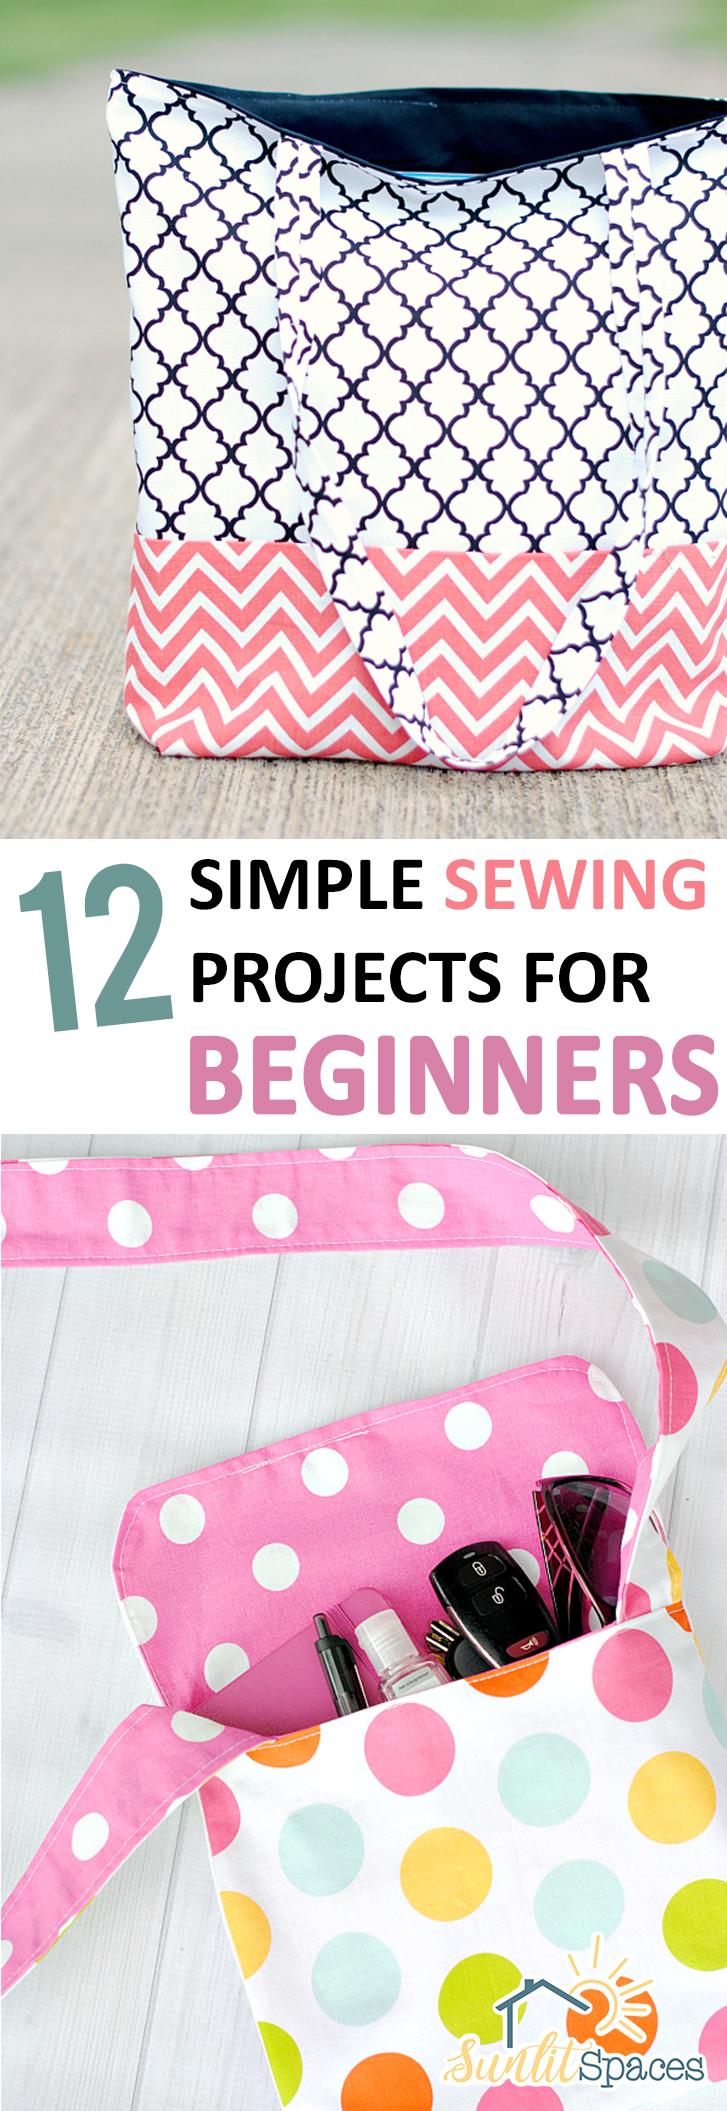 50 Sewing Projects for Beginners